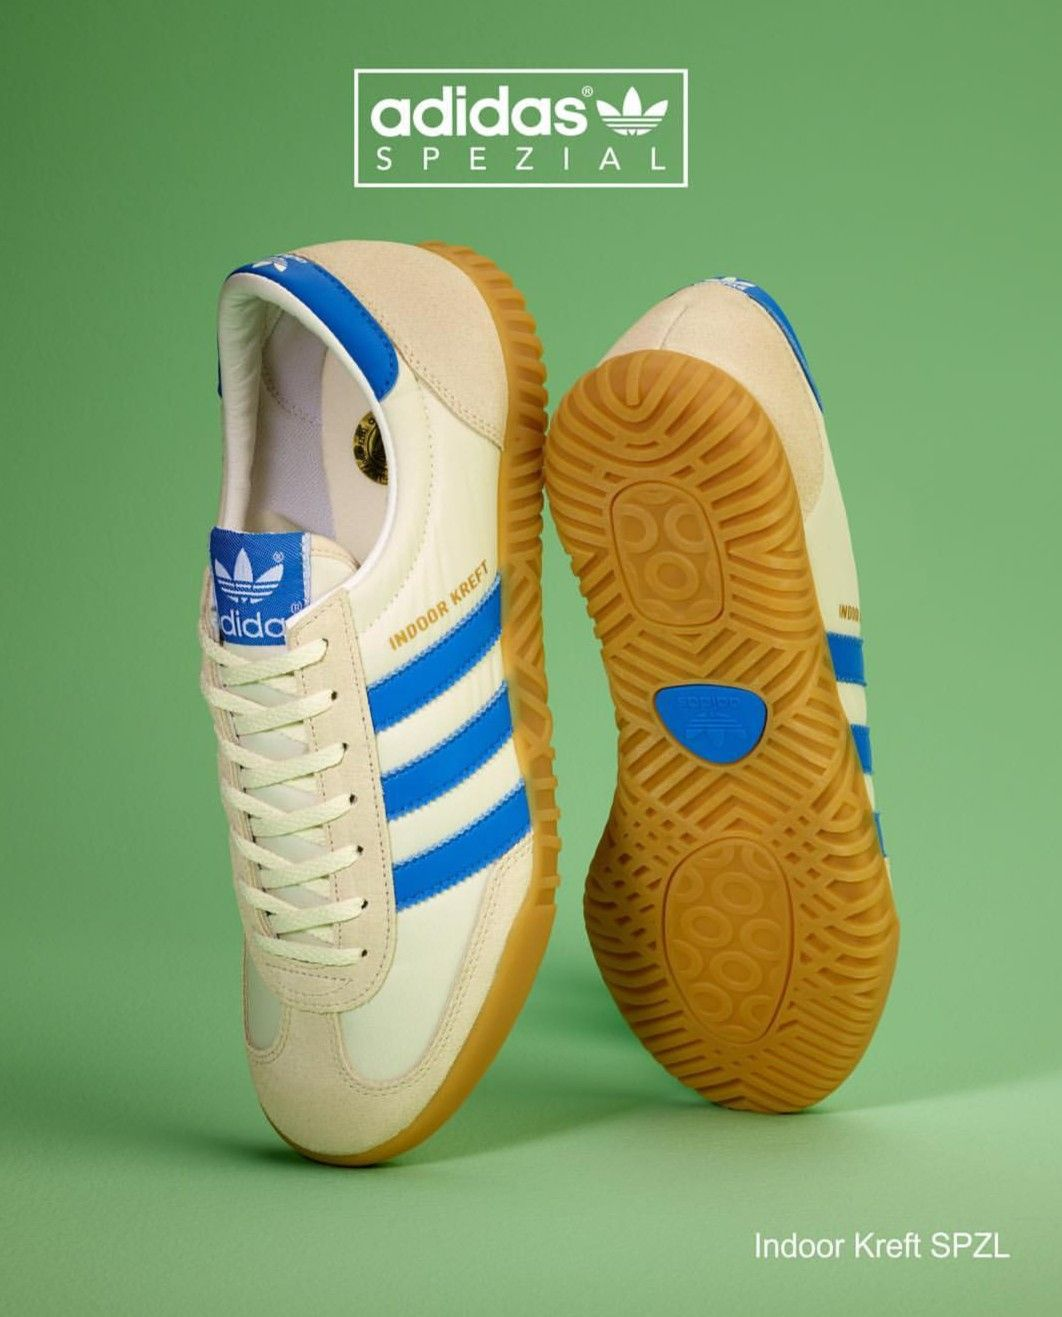 f4870a724cd Adidas Indoor Kreft from the new 2018 Spezial range launching in March.